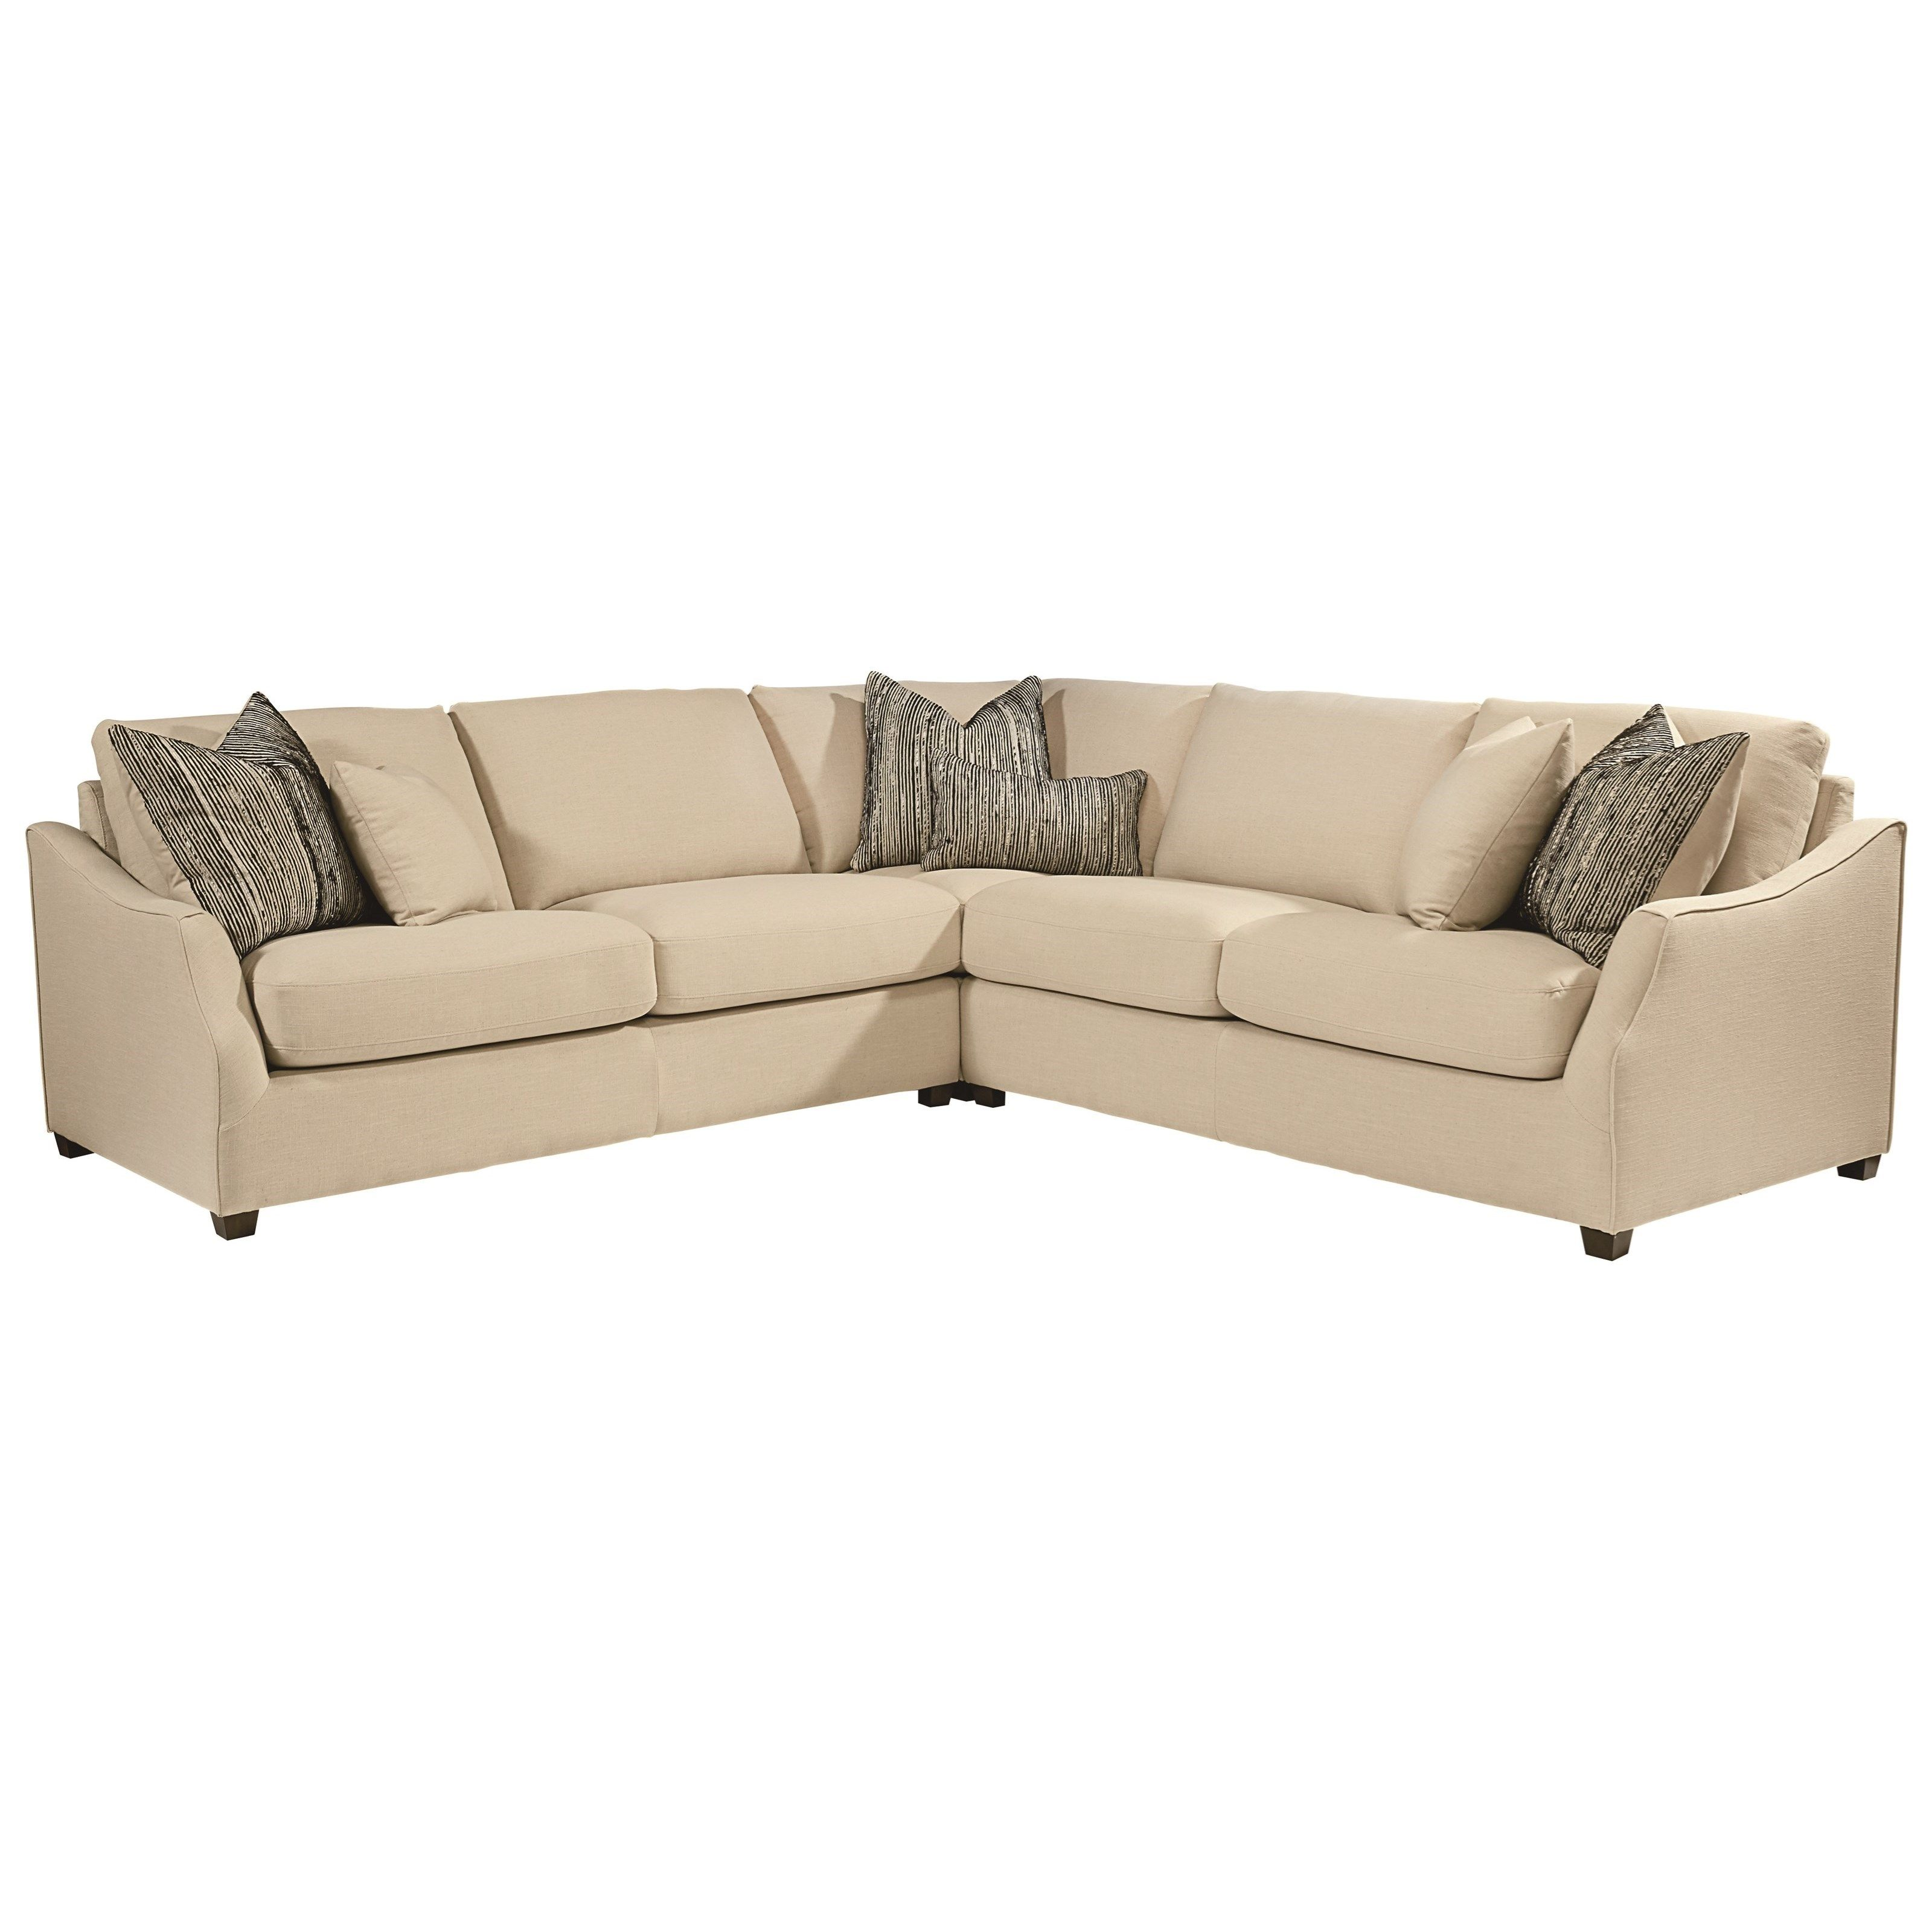 mn adcock lsg sectional by dealer jackson collection serena collections furniture sofas